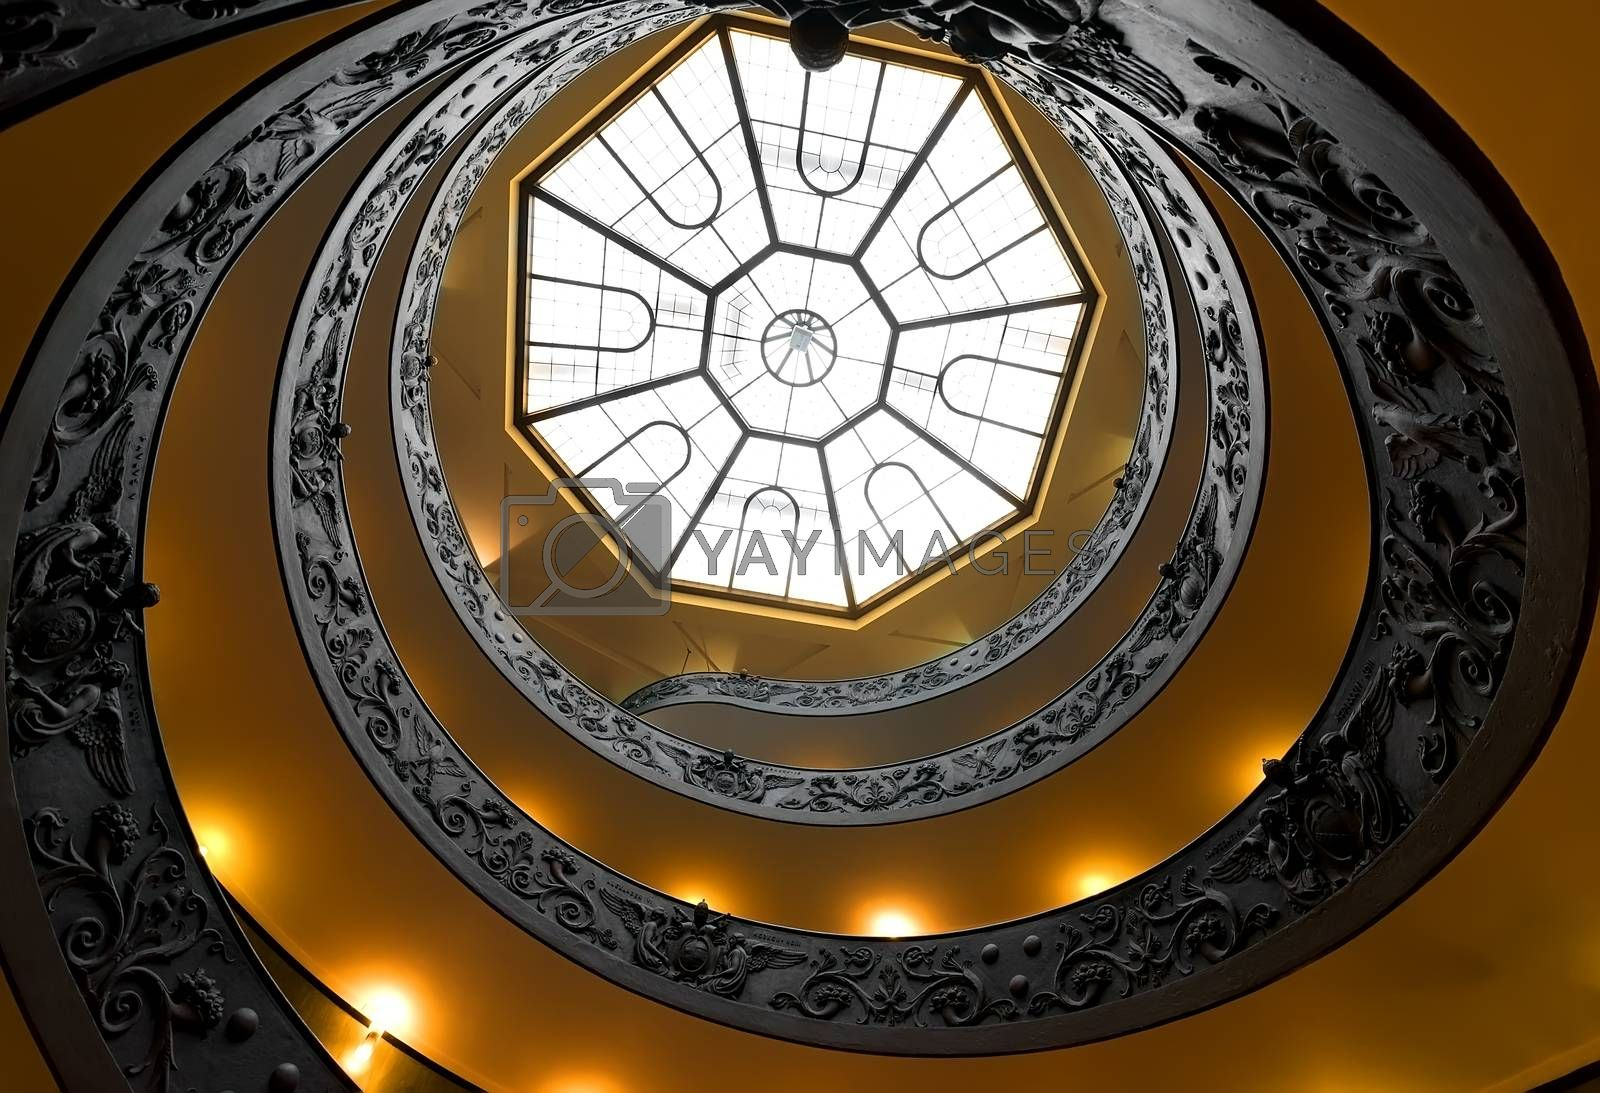 Ornate round steps in Vatican museum, bottom view. Vatican on August 19, 2016 in Rome, Italy